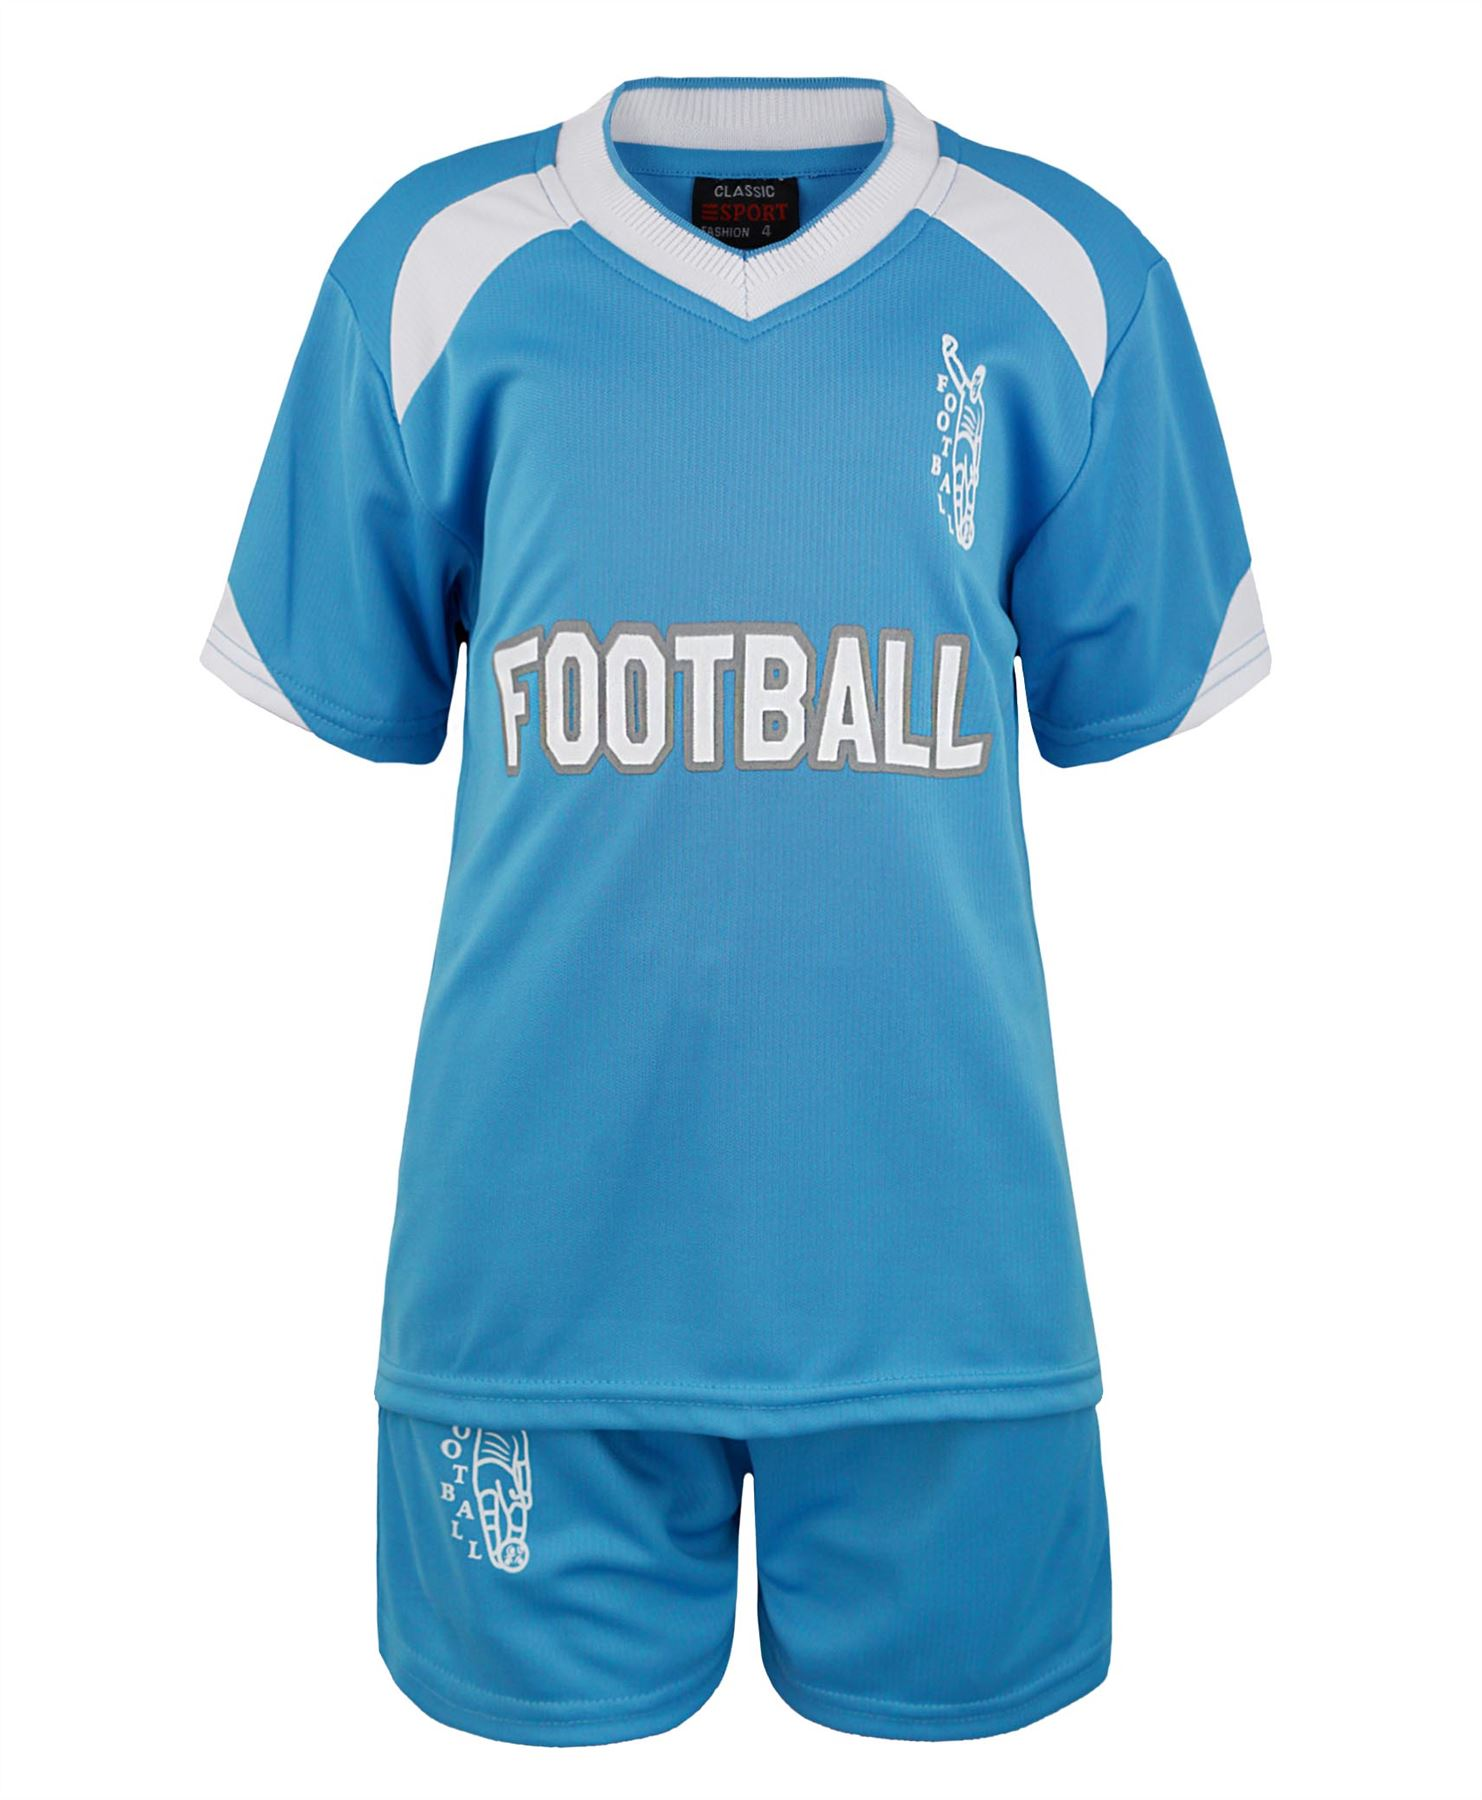 KIDS-2-PIECE-T-SHIRT-SHORTS-SET-FOOTBALL-PRINT-GIRLS-BOYS-SPORTS-KIT-3-14-YEAR